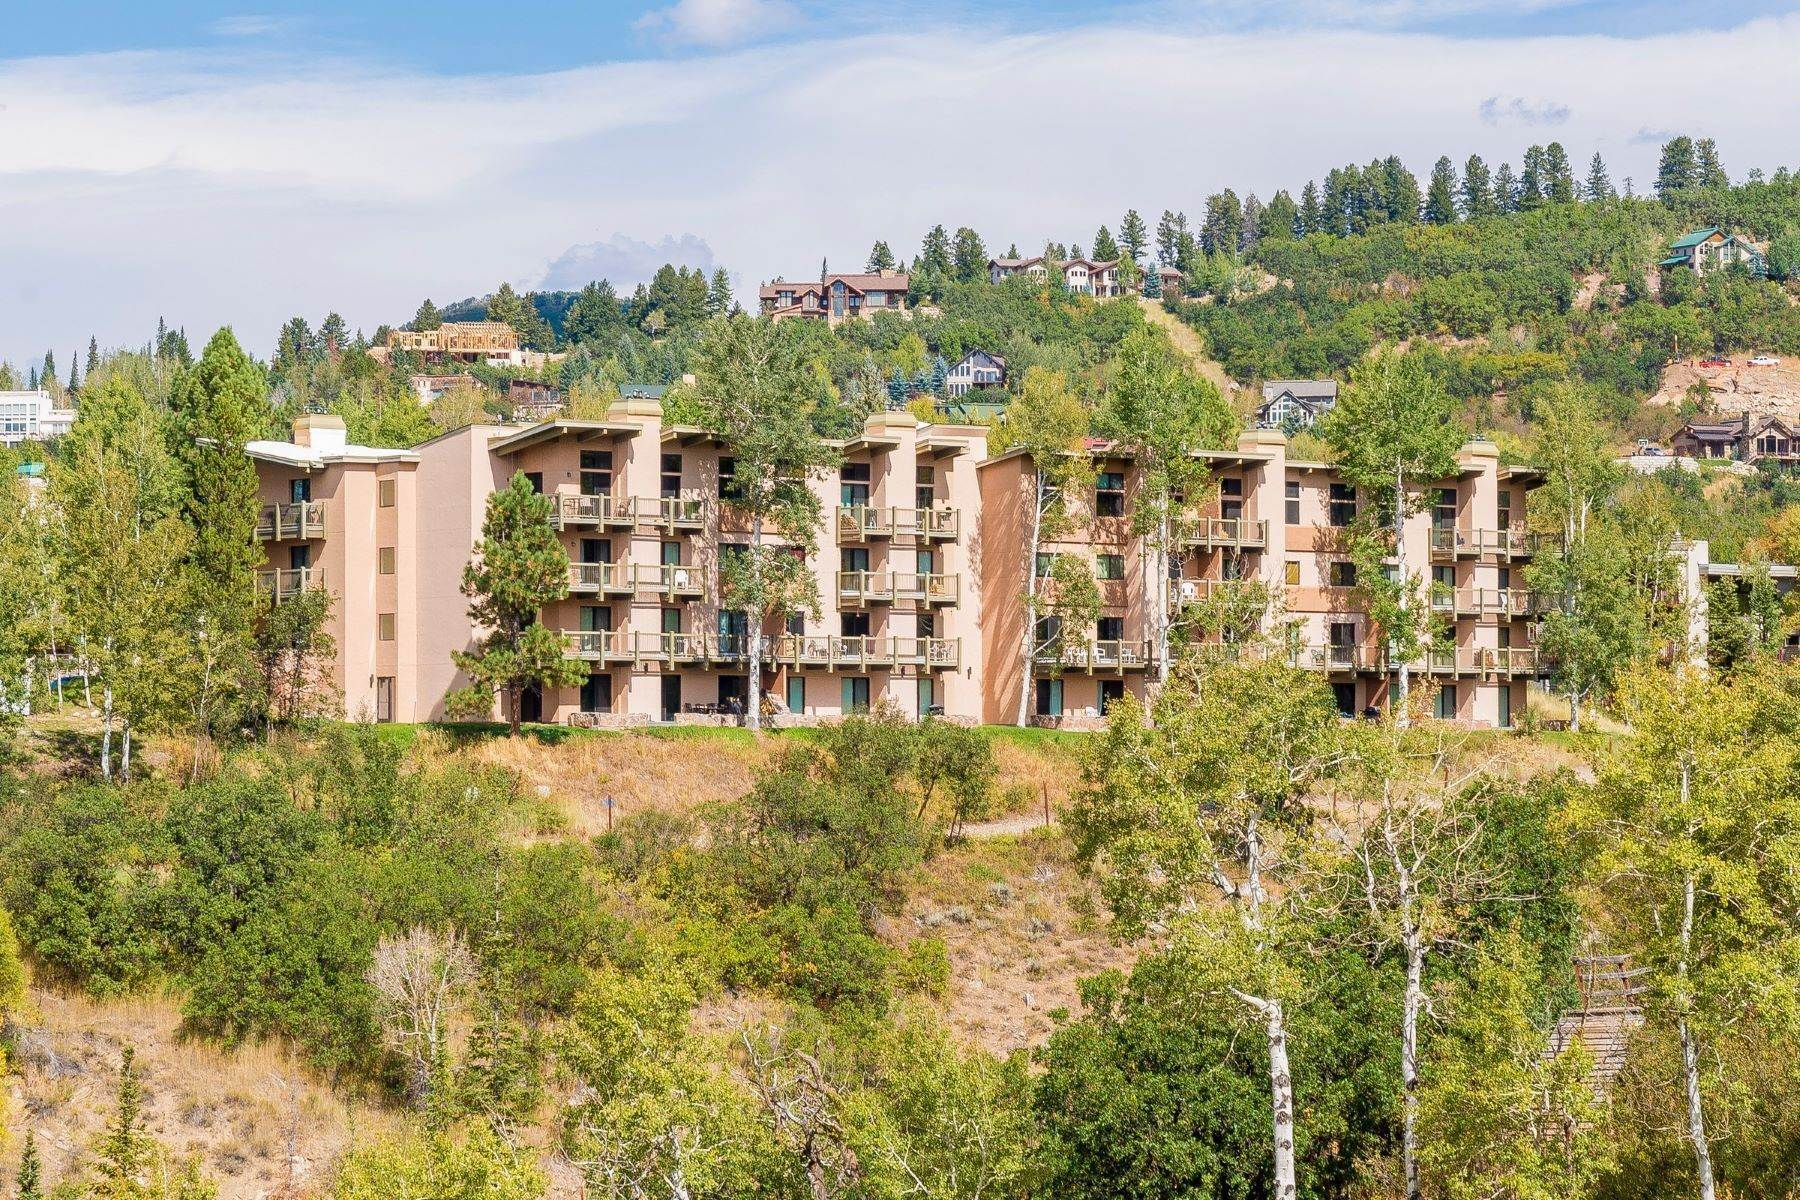 Condominiums for Sale at Ski-In/Ski-Out at Storm Meadows 2375 Storm Meadows Drive #417 Steamboat Springs, Colorado 80487 United States